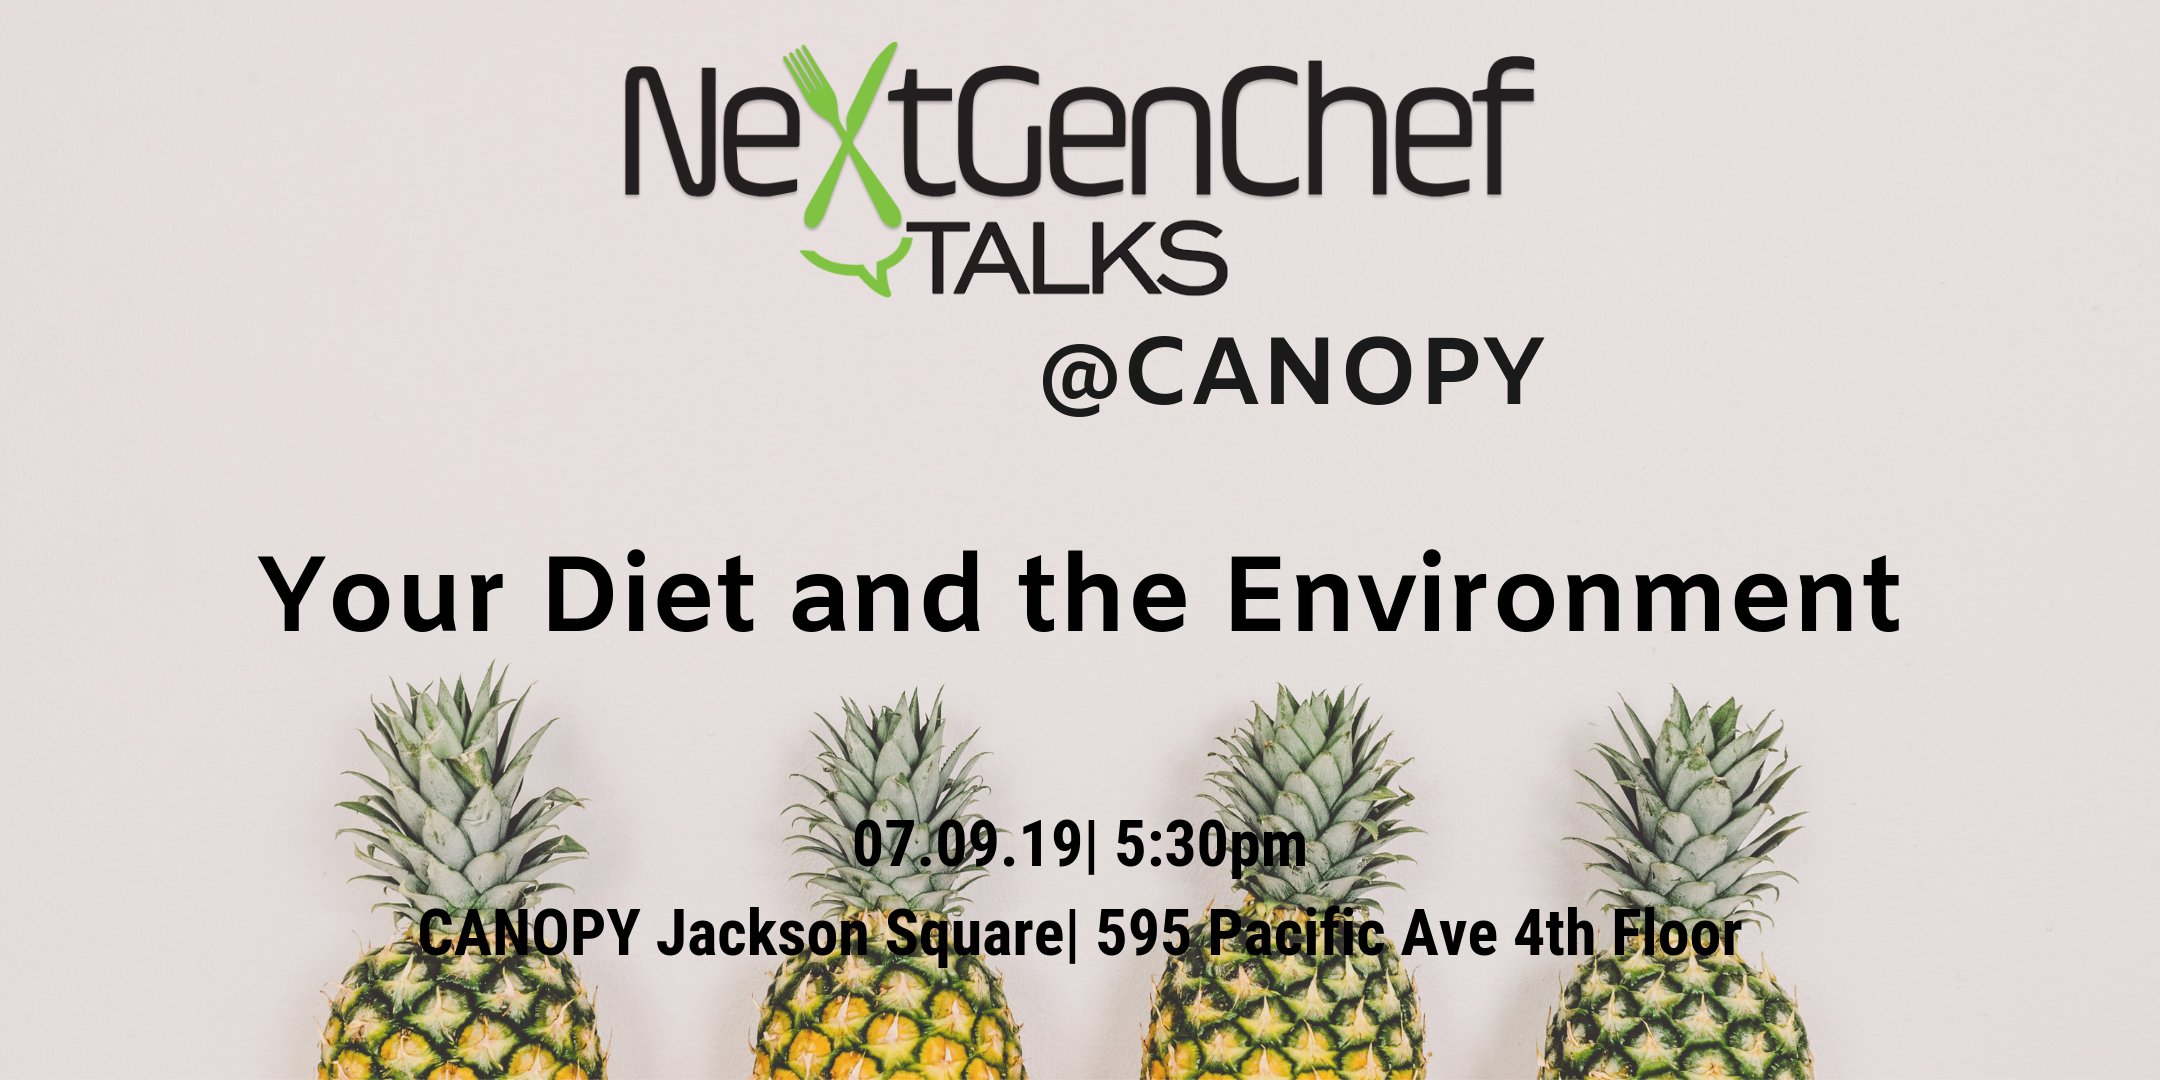 NextGen Chef Talks: Your Diet and the Environment